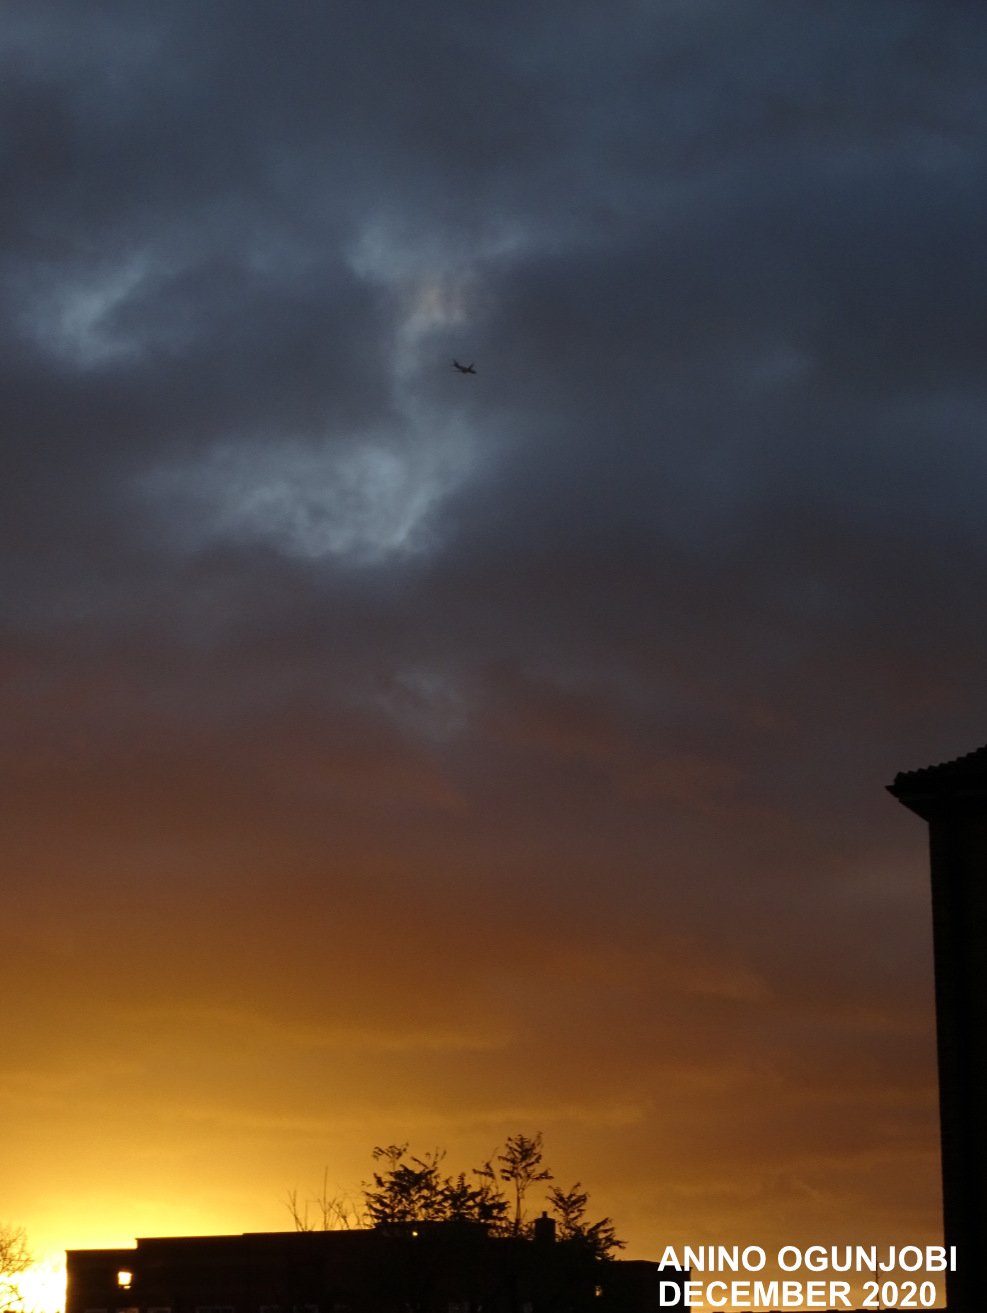 Rain-cloud-and-sunset-clouds-in-the-sky-movie-like-atmospheric-scenery